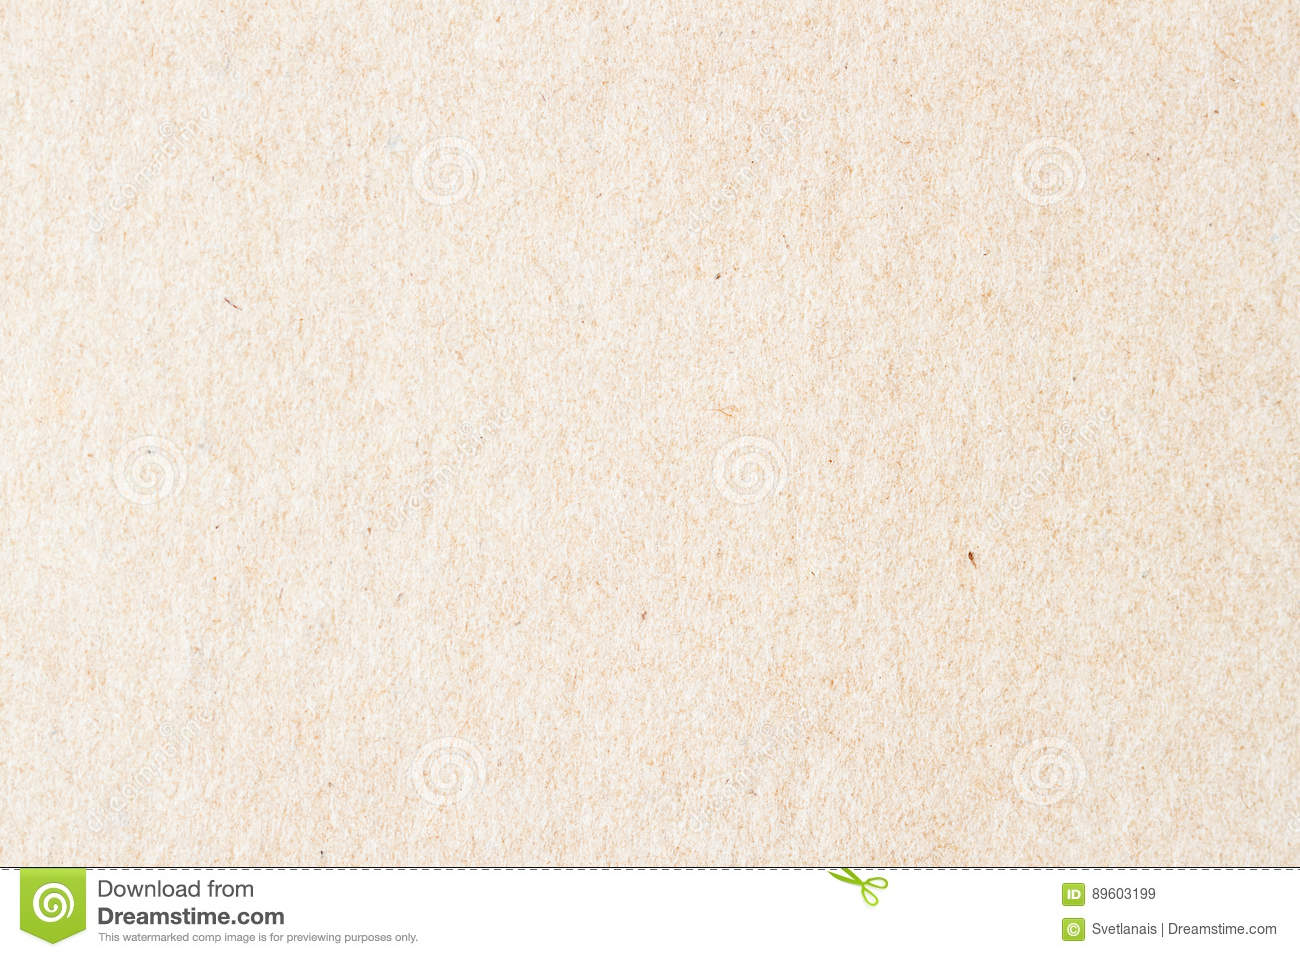 Texture of old organic light cream paper. Recyclable material with small inclusions of cellulose. Background , backdrop